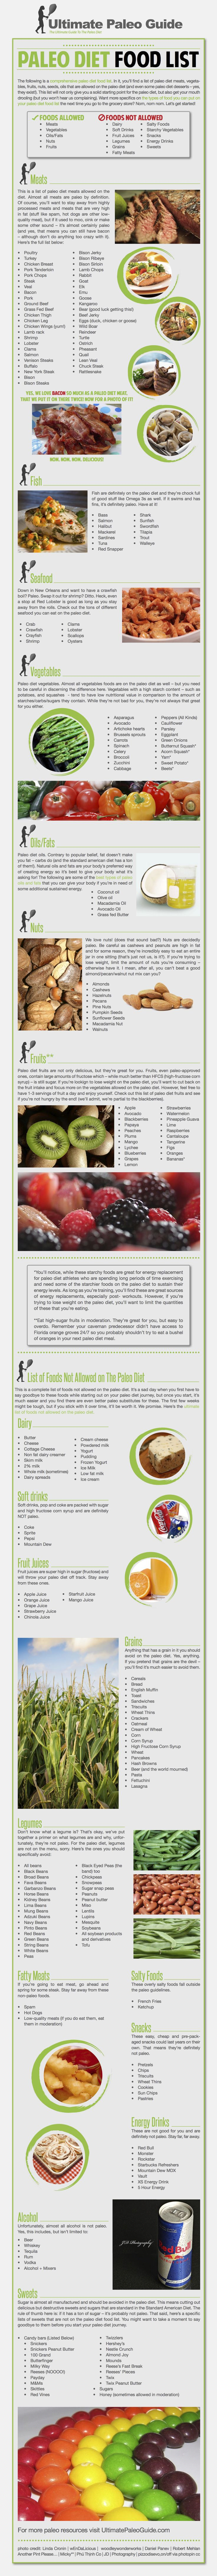 Paleo Diet Food List Infographic @Bryttin Youst Schwenk Jones-- is this what you were telling me about?